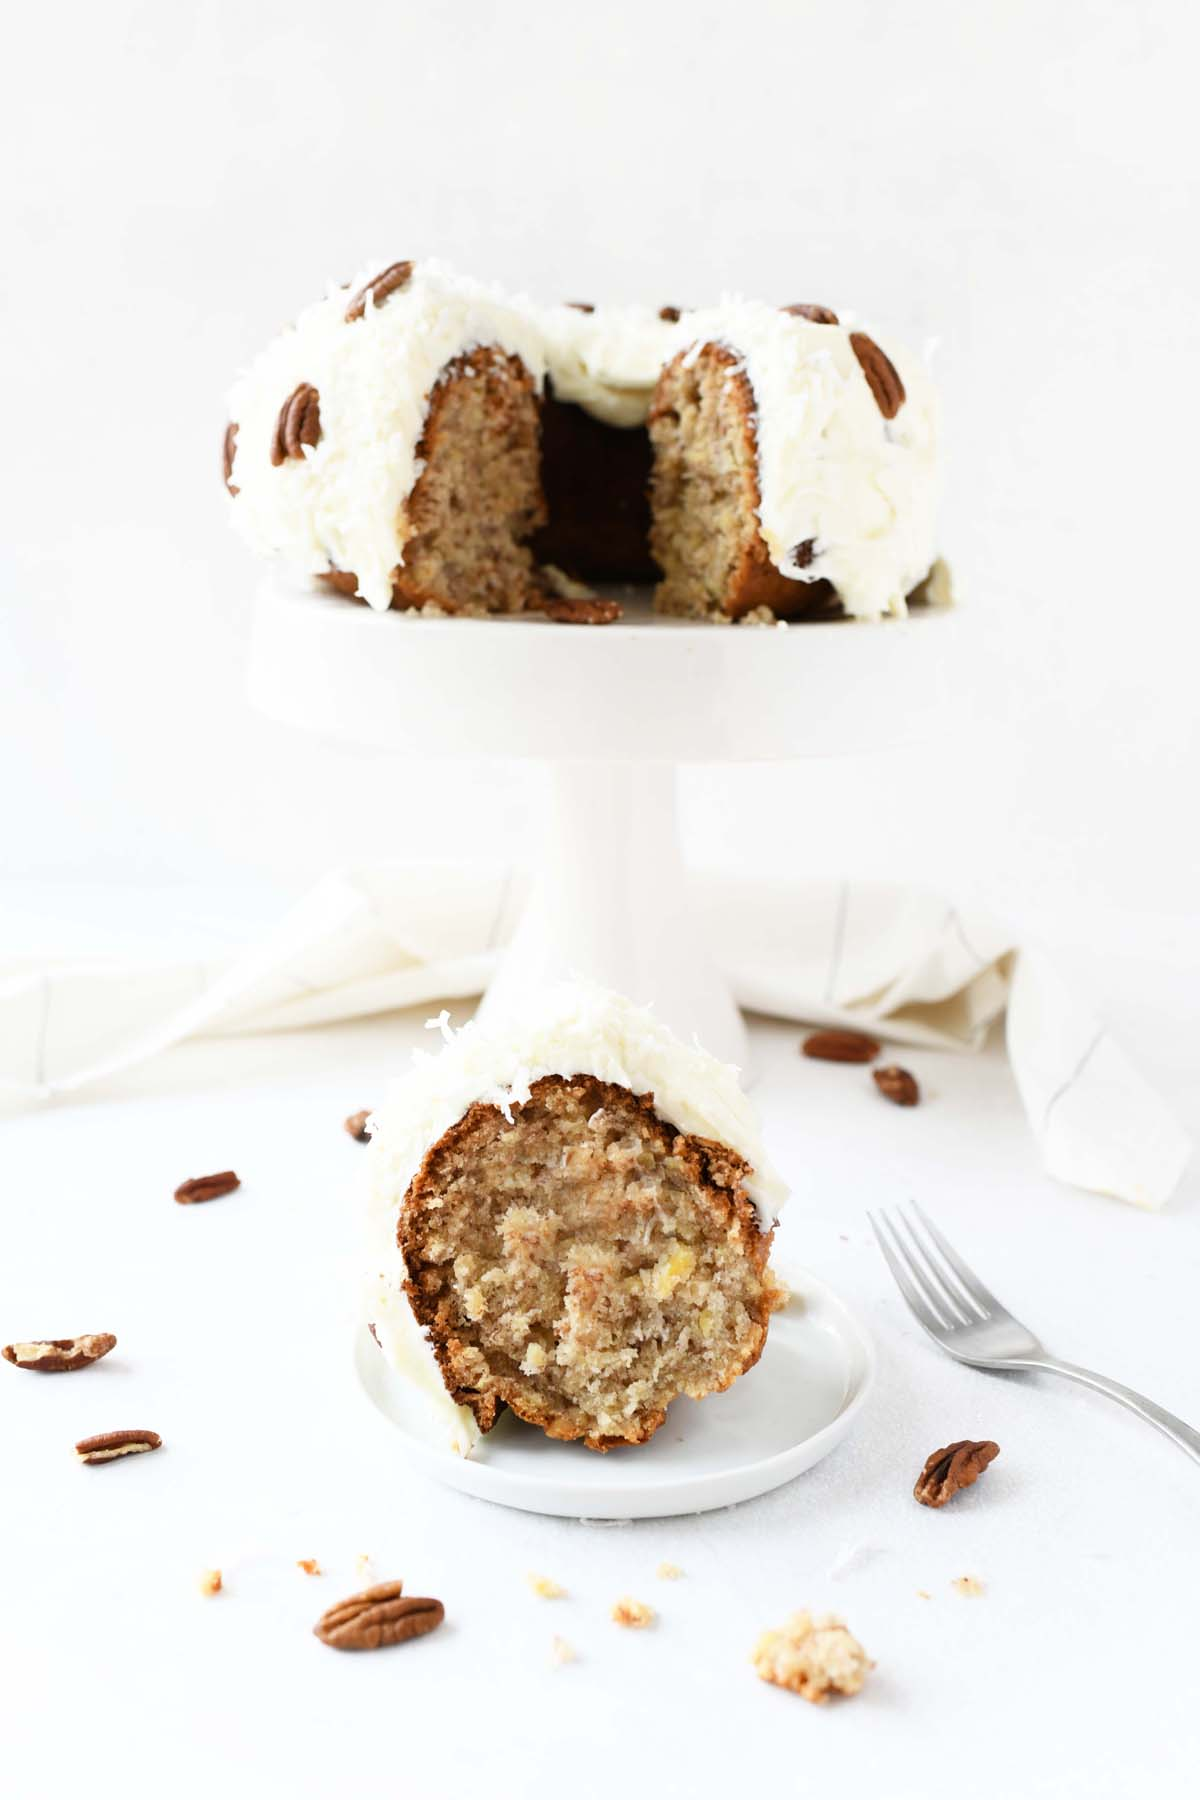 Hummingbird Cake on a white platter with a fork.